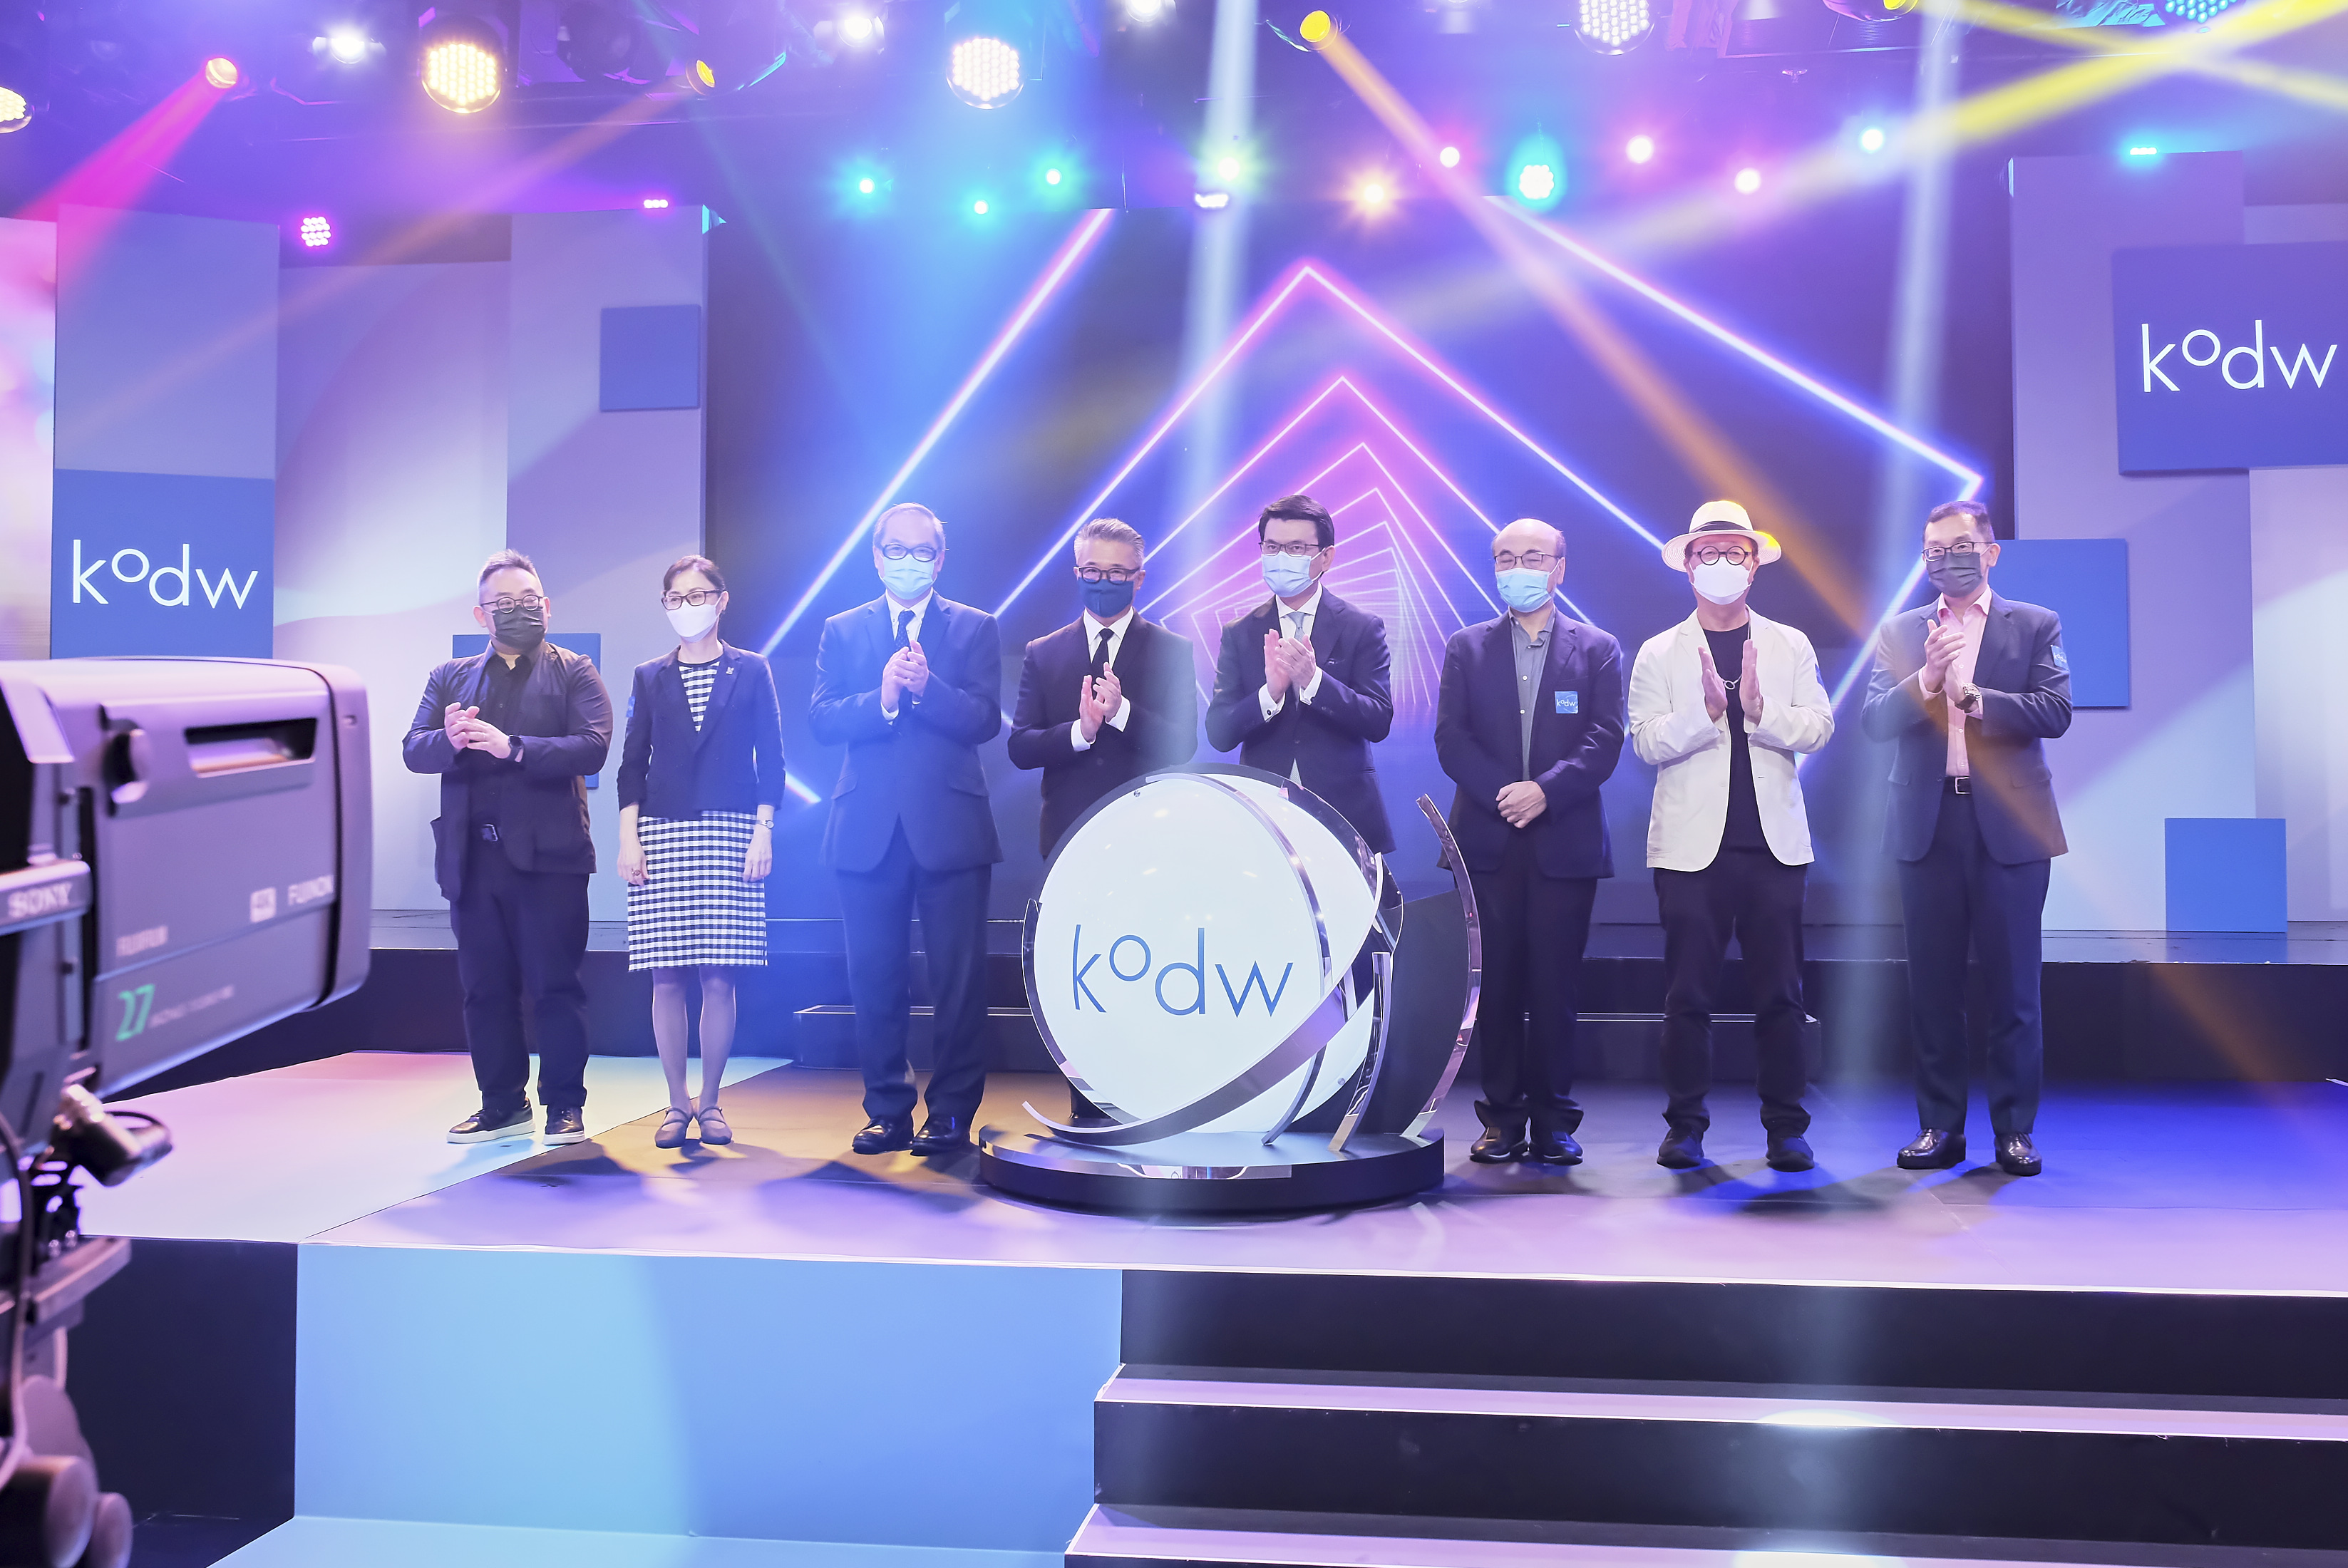 Future Service Economy Redefined Through Cross-Disciplinary Exchange at KODW 2021